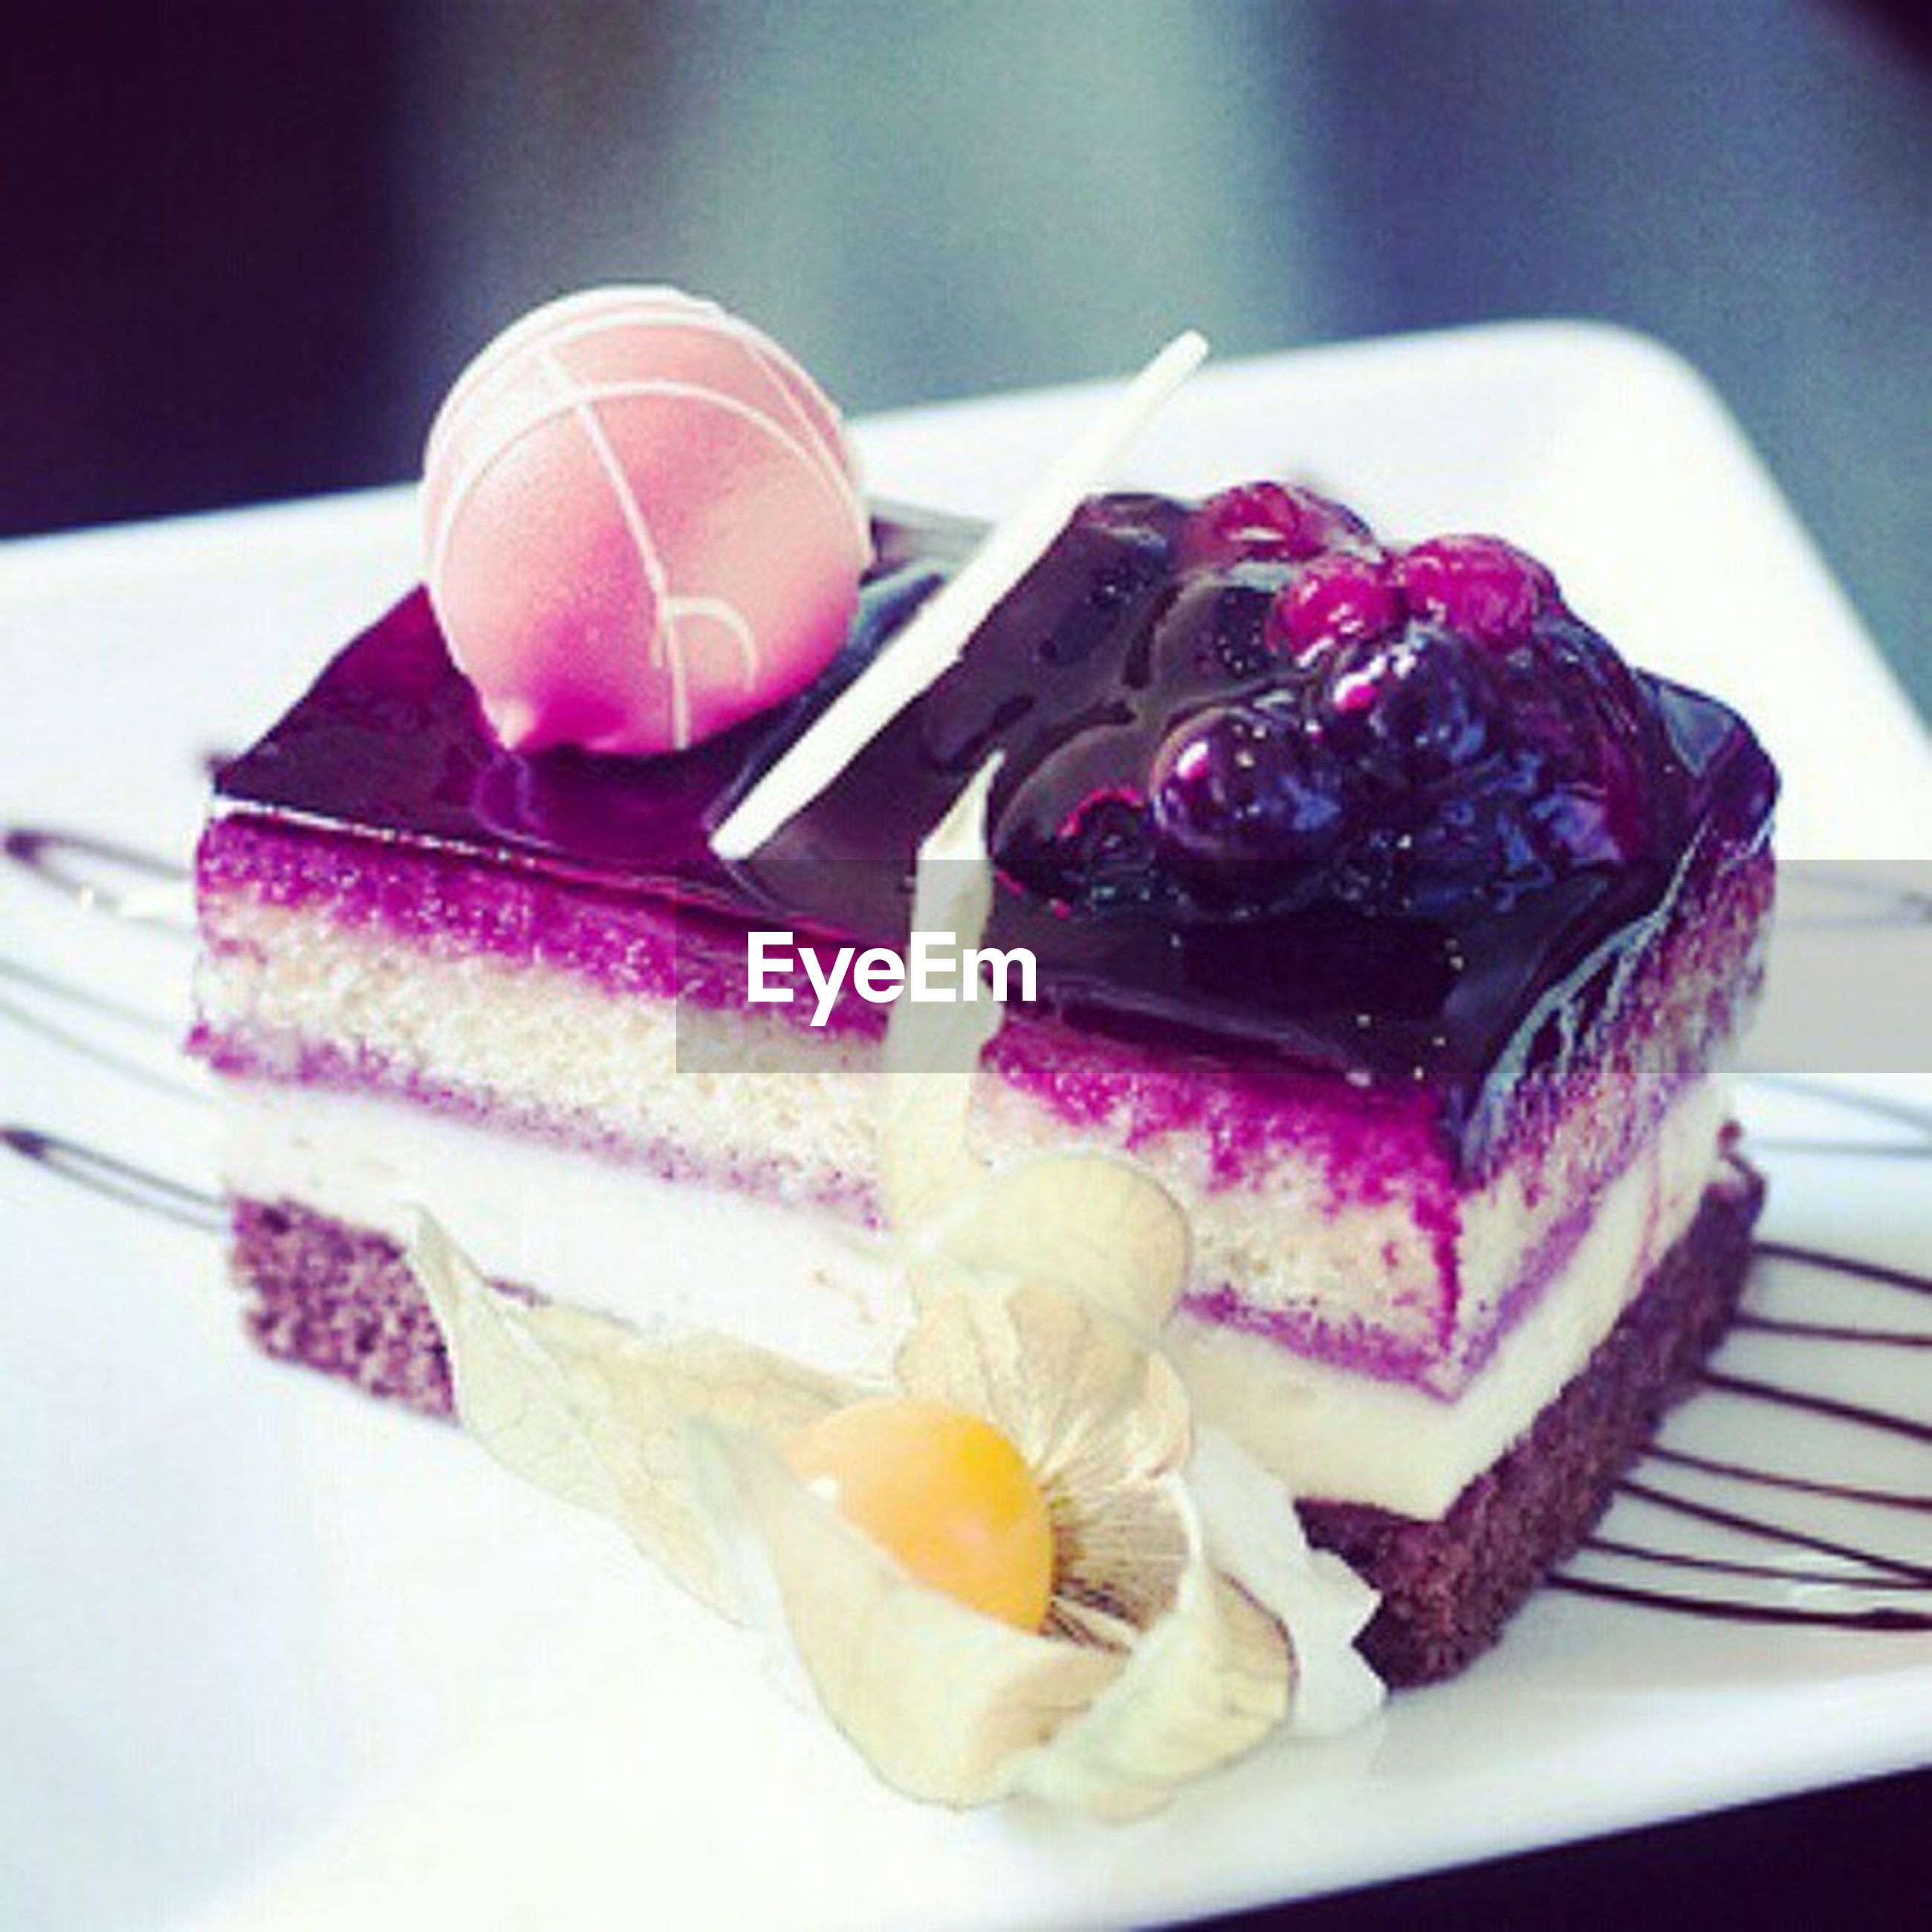 food and drink, freshness, food, indoors, sweet food, ready-to-eat, indulgence, still life, dessert, close-up, unhealthy eating, temptation, plate, table, serving size, ice cream, cake, slice, frozen food